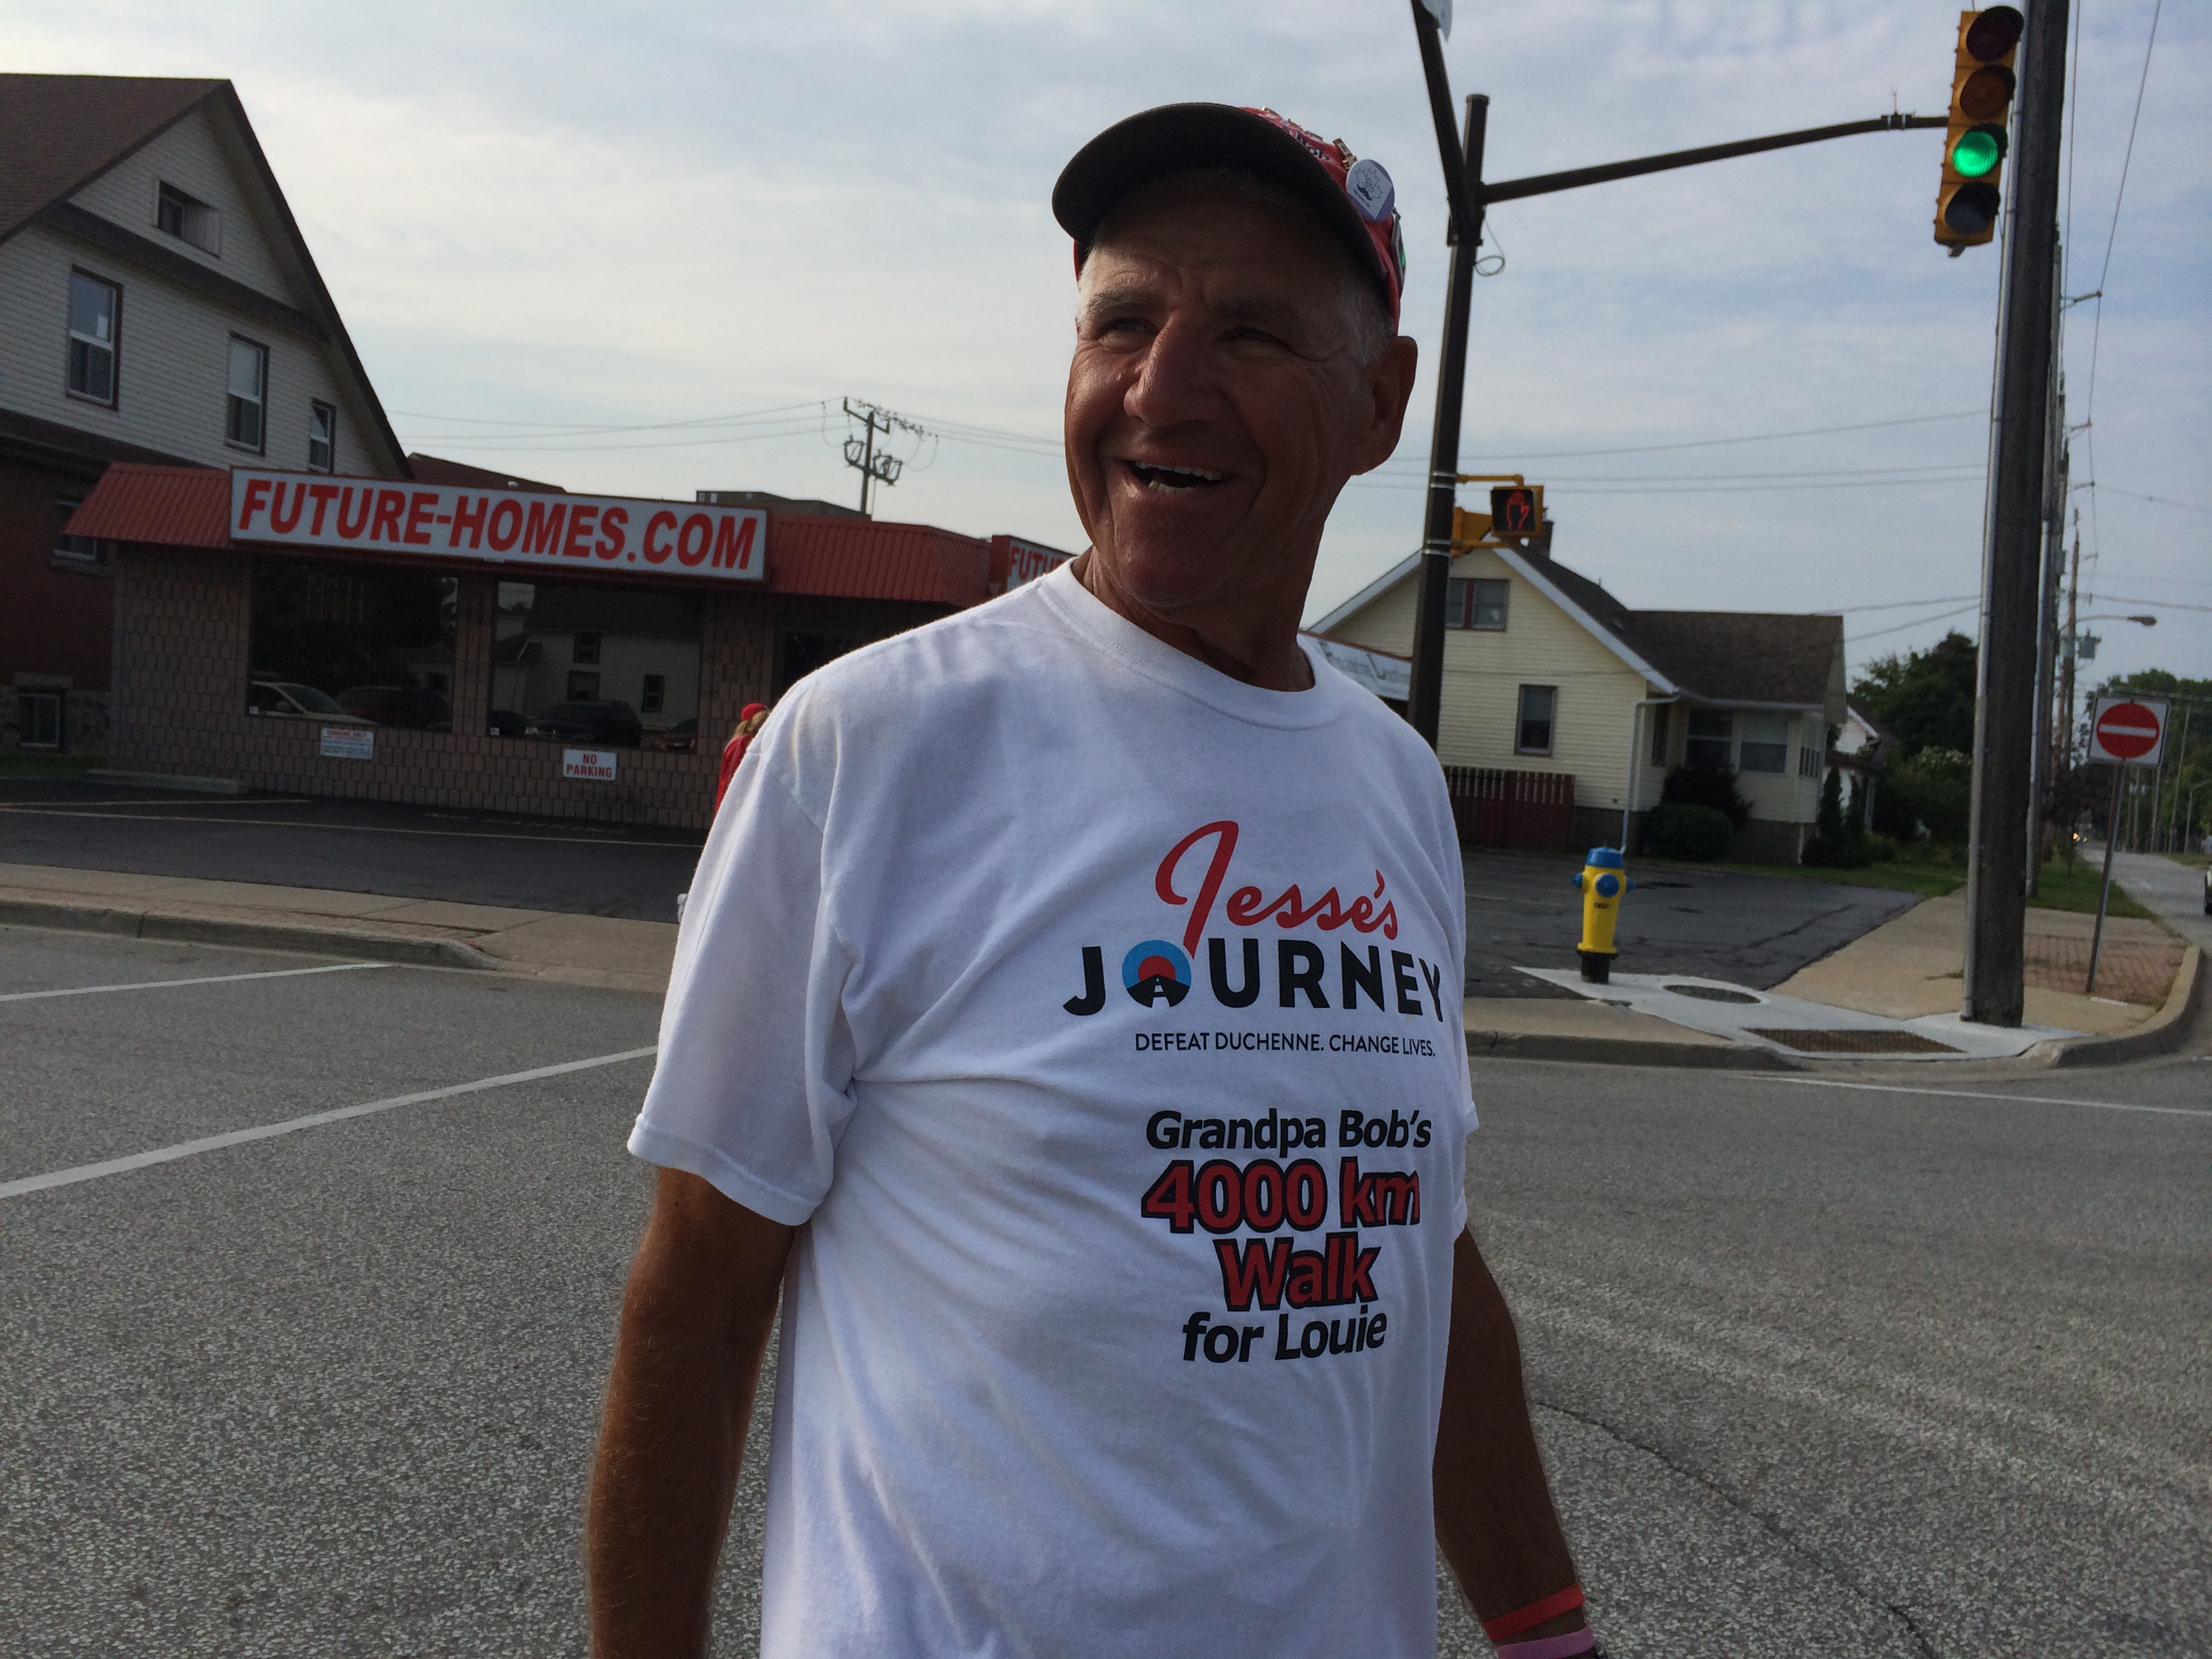 Bob Facca from London walks in uptown Leamington on July 30, 2014 as part of the Jessey's Journey initiative to raise money and awareness for Duchenne Muscular Dystrophy. (Photo by Ricardo Veneza)